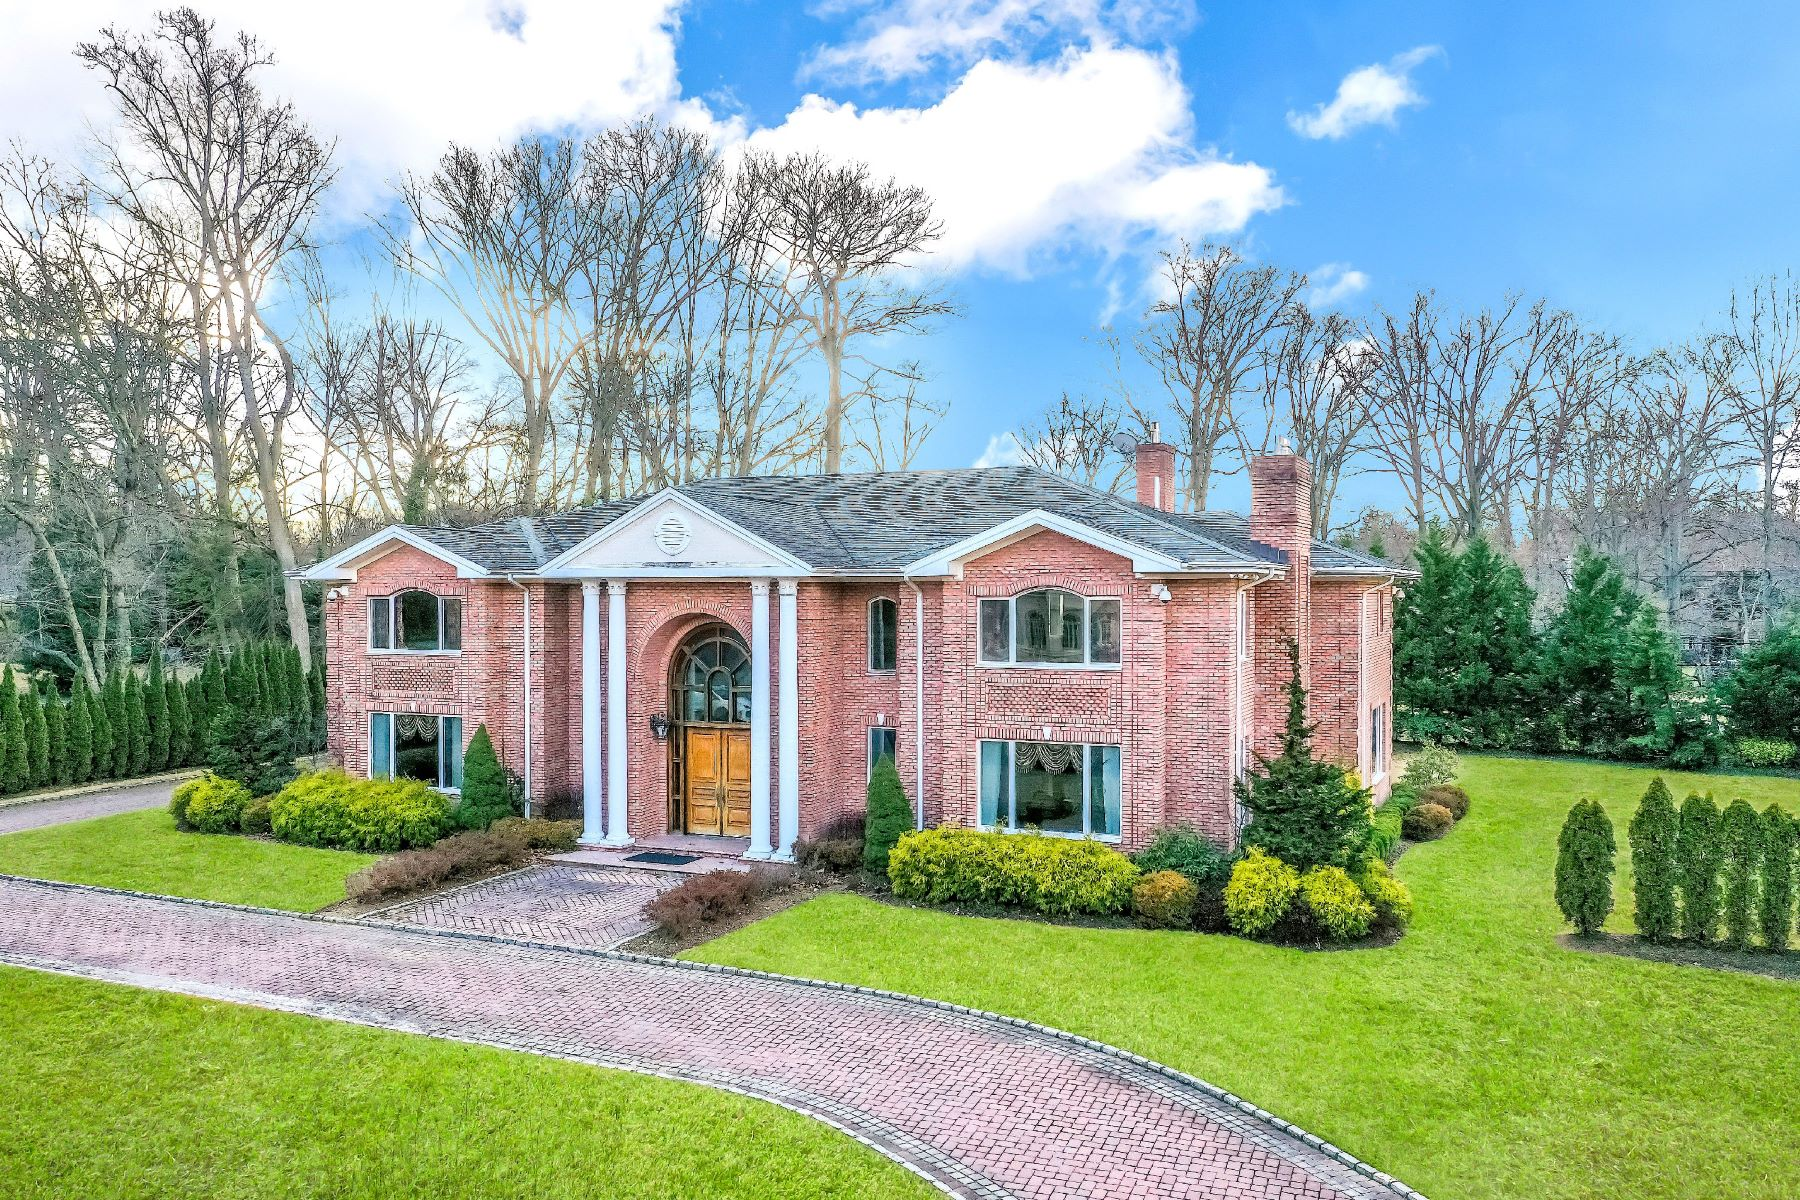 Property for Sale at Great Neck 5 Beech Drive Great Neck, New York 11024 United States